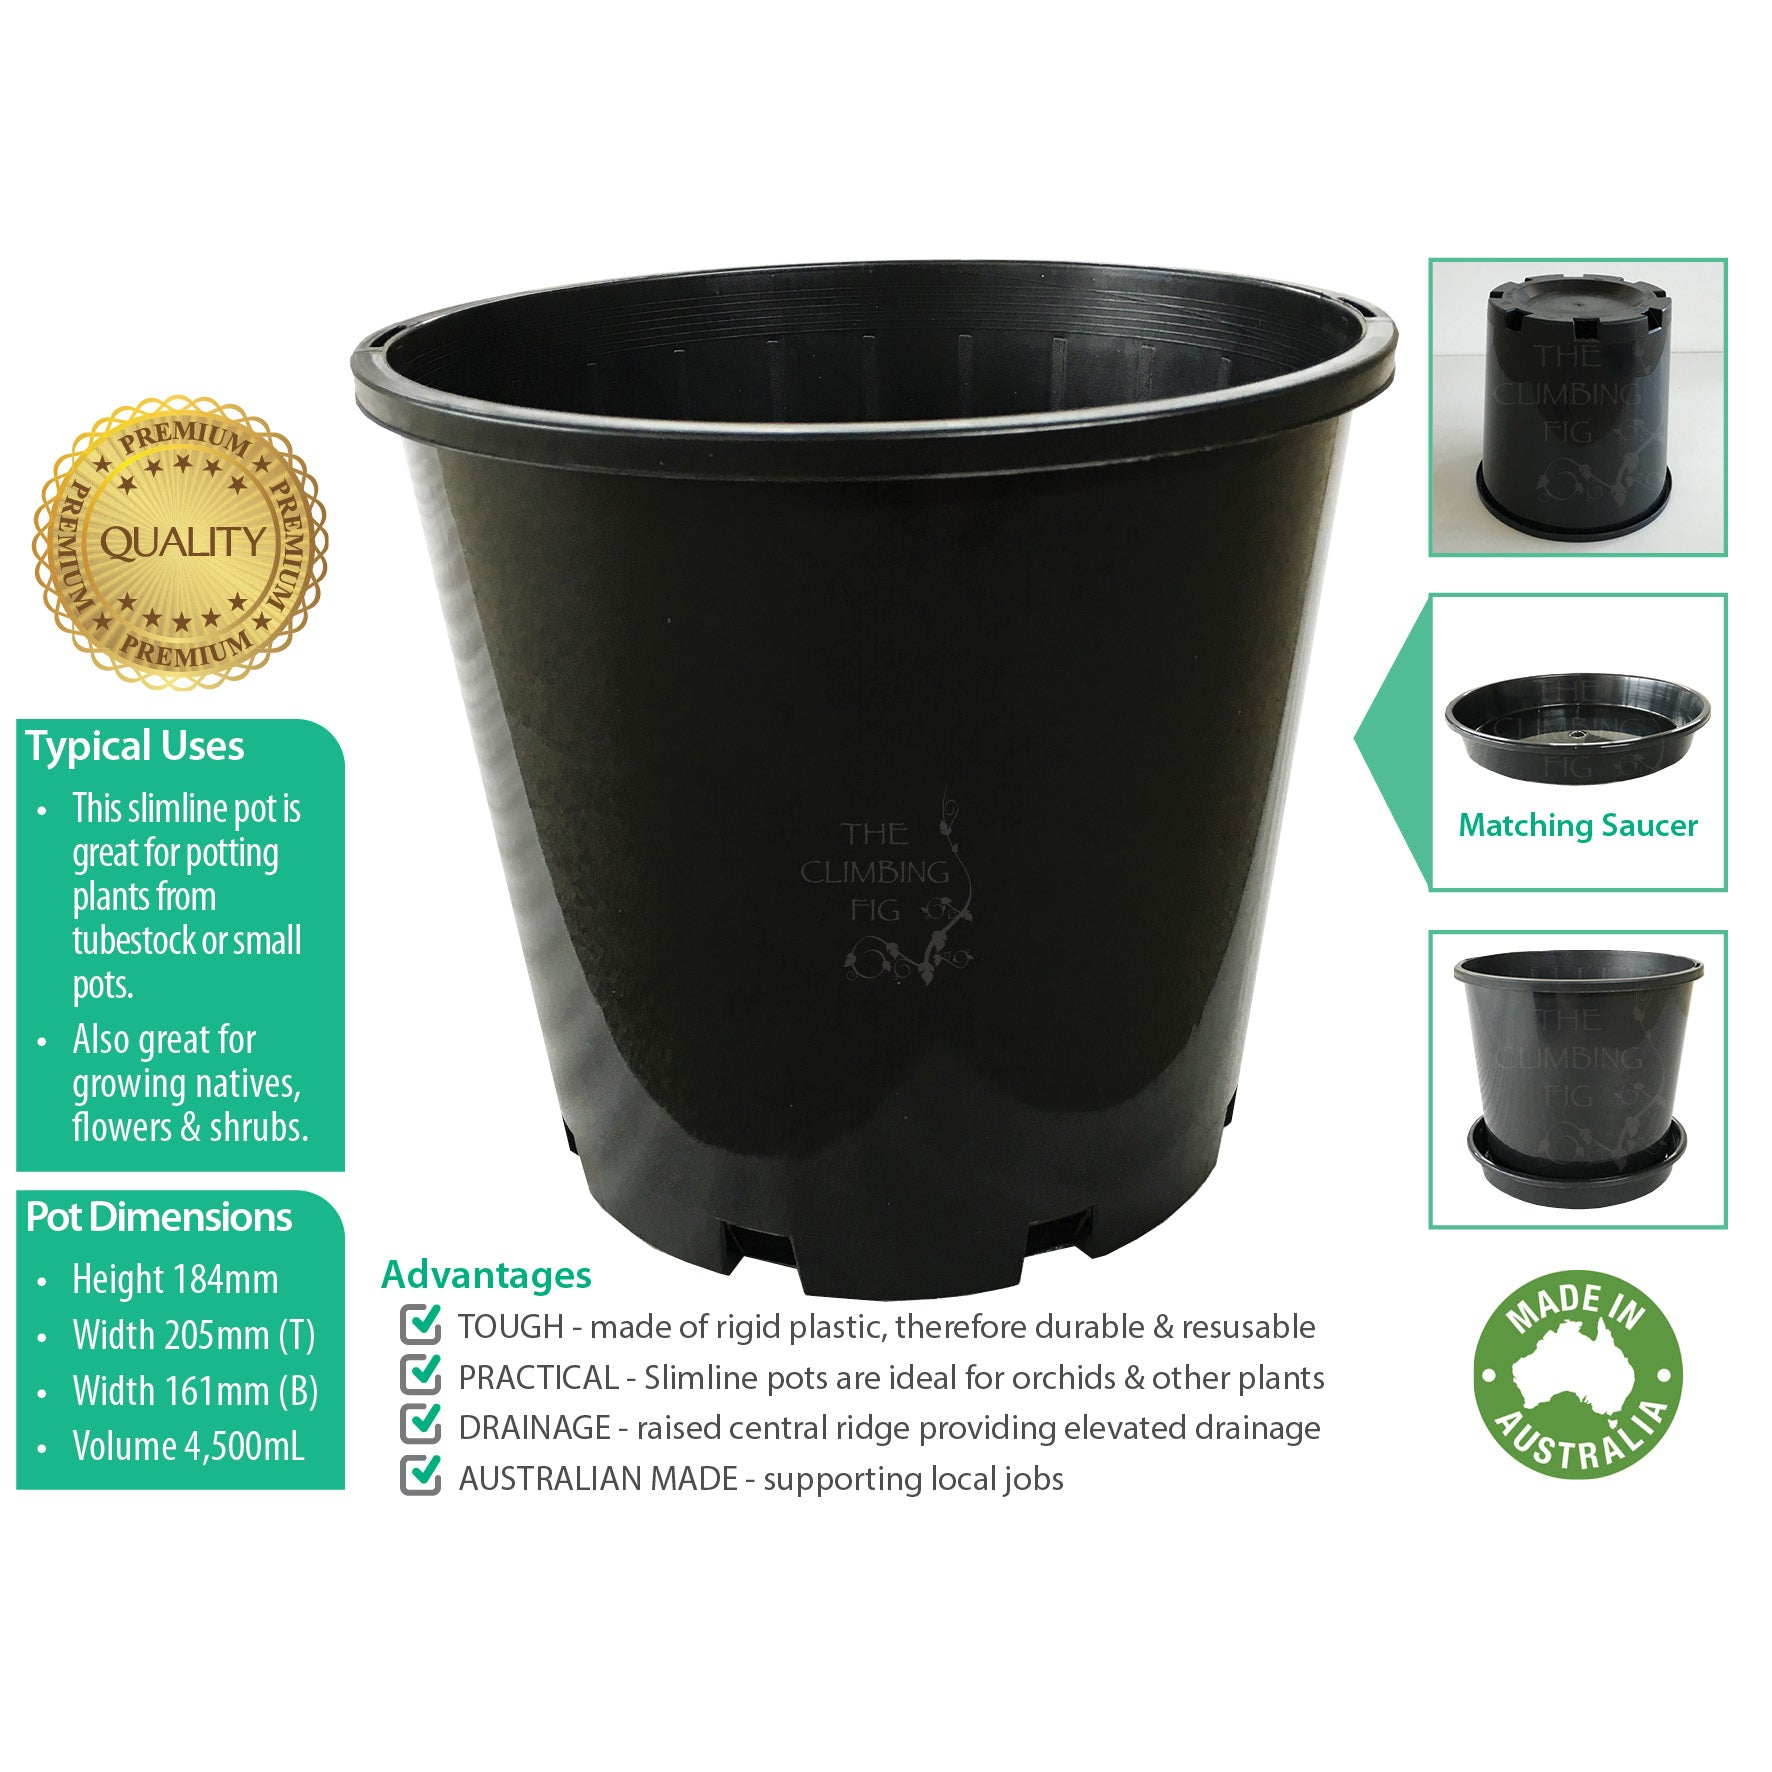 200mm Slimline BLACK Plastic Pots with Saucers. For potting plants orchids trees